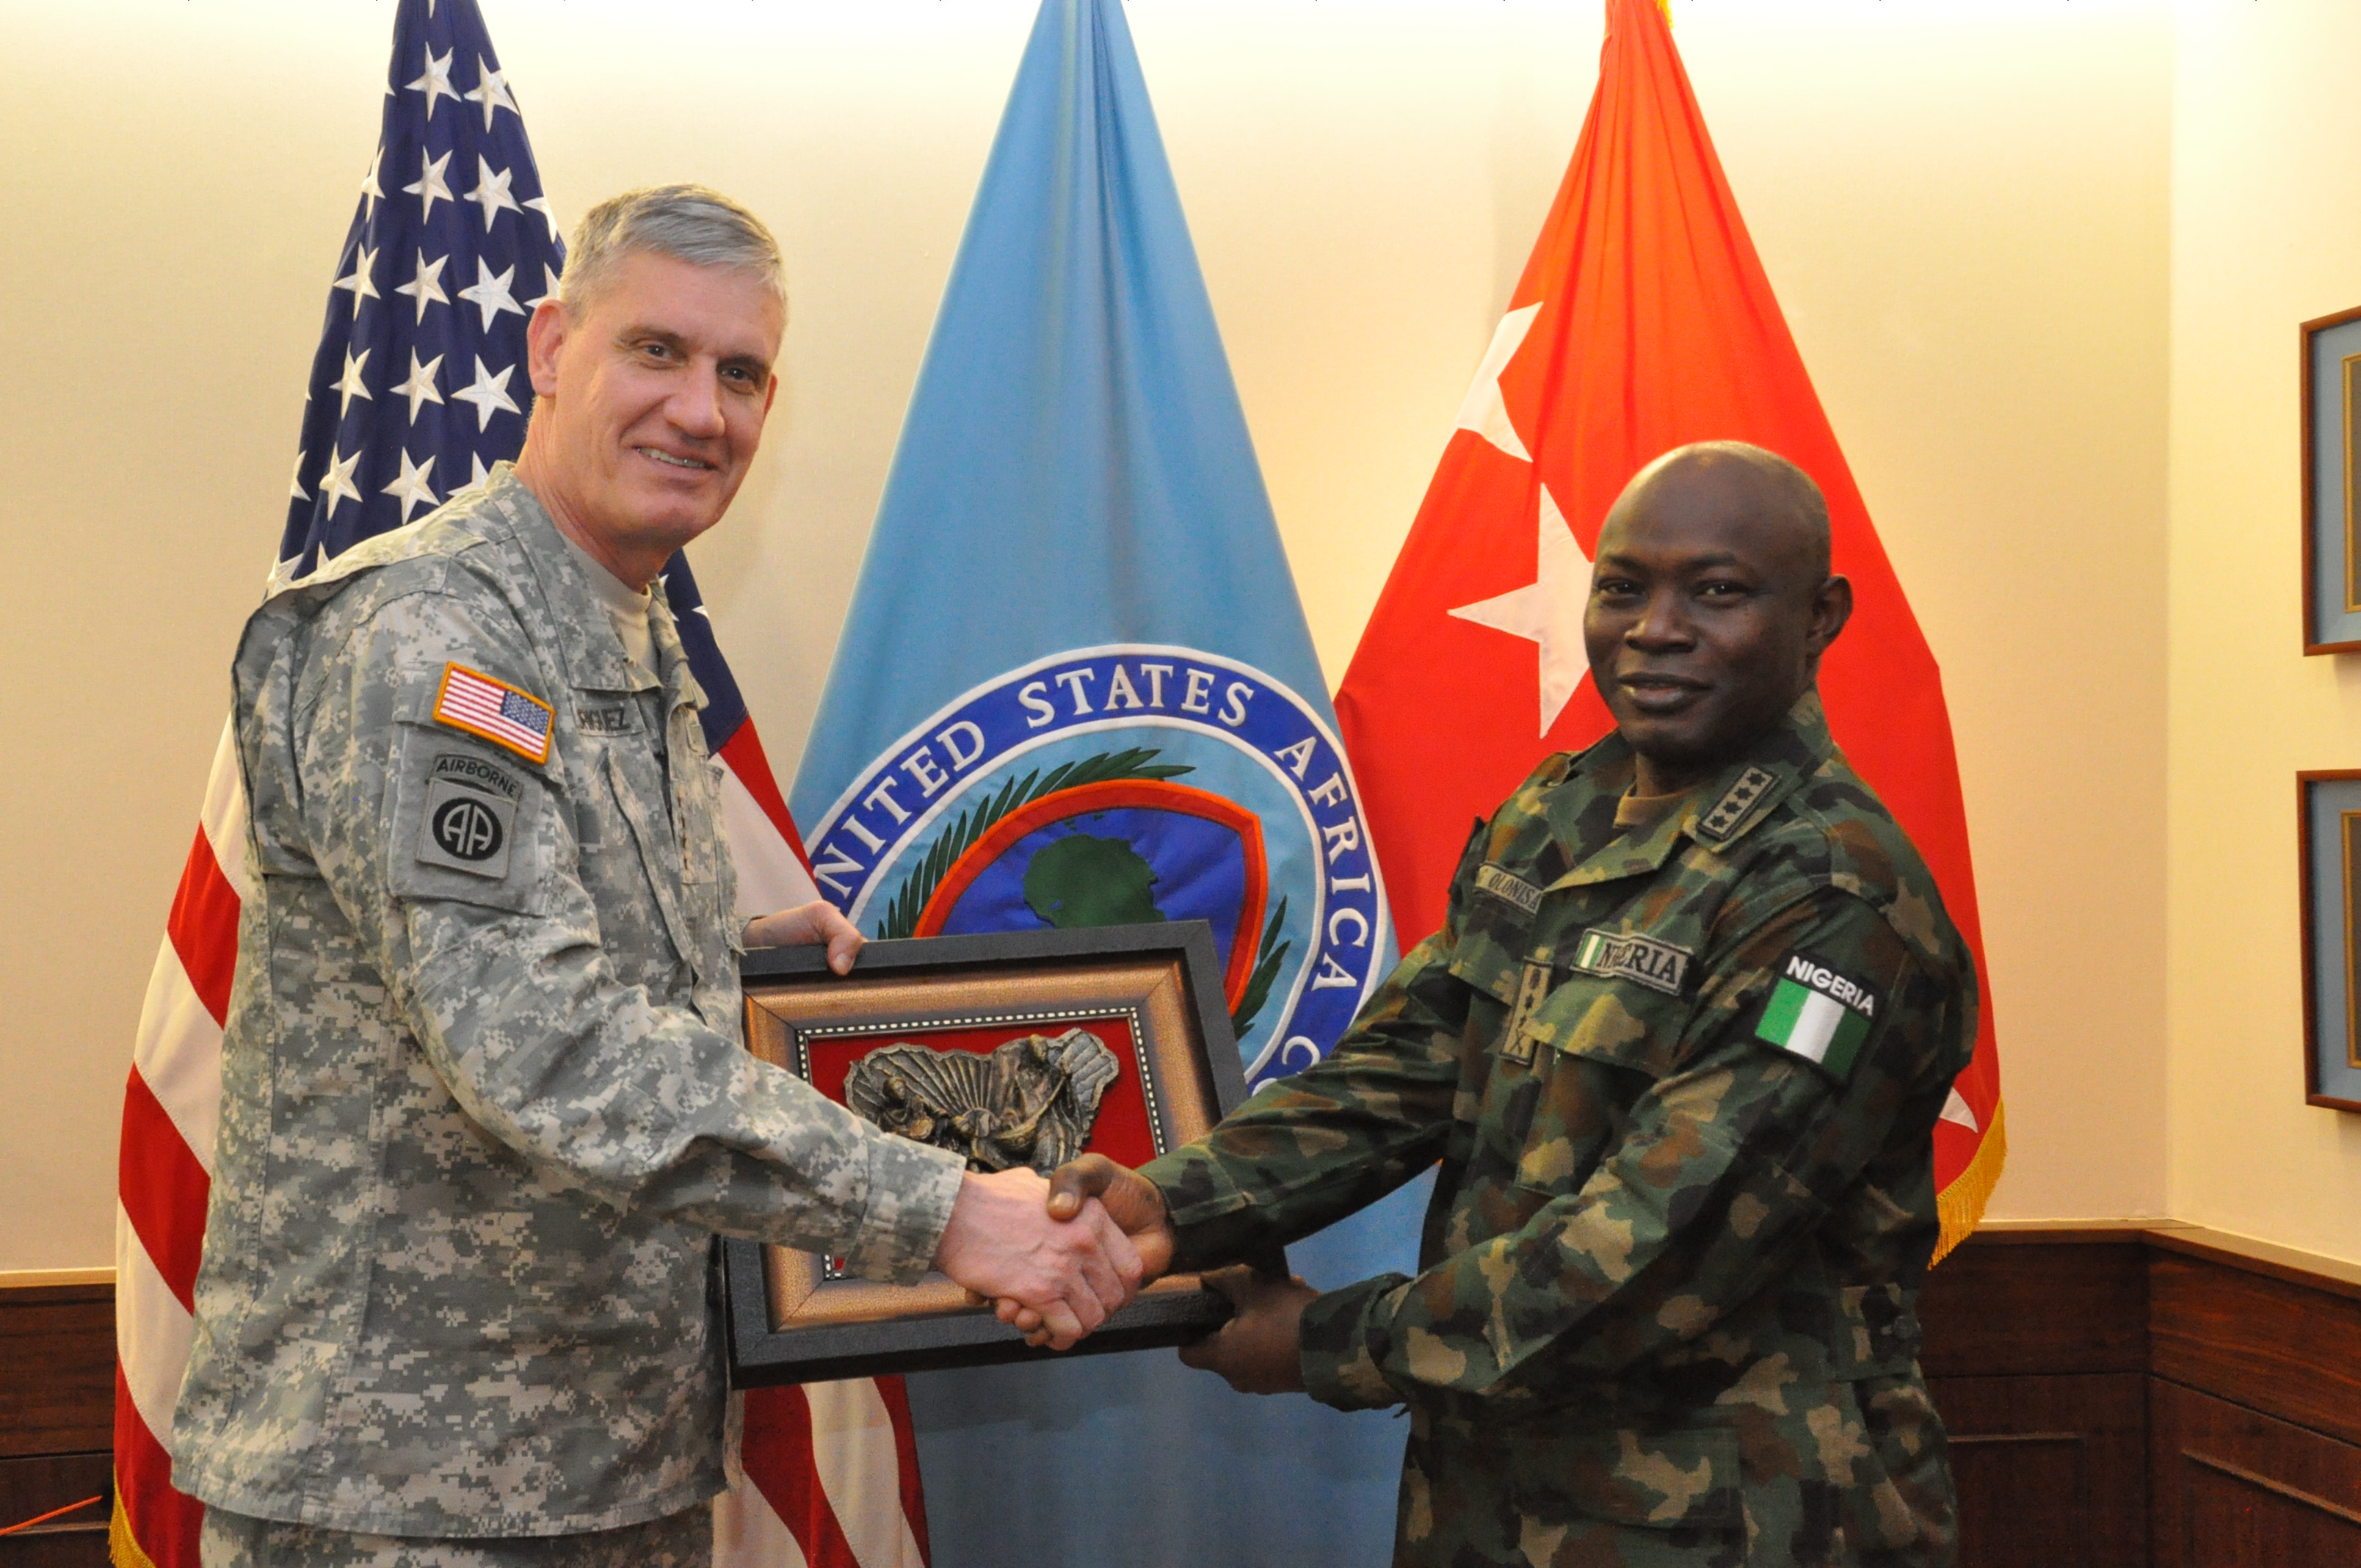 Gift exchange: Gen. Abayomi Olonisakin, Nigeria chief of defence staff (right) presents a gift of appreciation to Gen. David Rodriguez, commander, U.S. Africa Command.  AFRICOM hosted a two-day meeting that brought together AFRICOM component commanders and several senior members of the Nigerian military.  The purpose of the visit was to reinforce the importance of a strong US-Nigeria security cooperation relationship, with topics focused on ways to counter terrorism, joint operations, logistics and maritime security in the Gulf of Guinea, Feb. 10, 2016, U.S. Army Garrison Stuttgart, Germany. (Photo by Brenda Law, U.S. Africa Command Public Affairs/RELEASED)